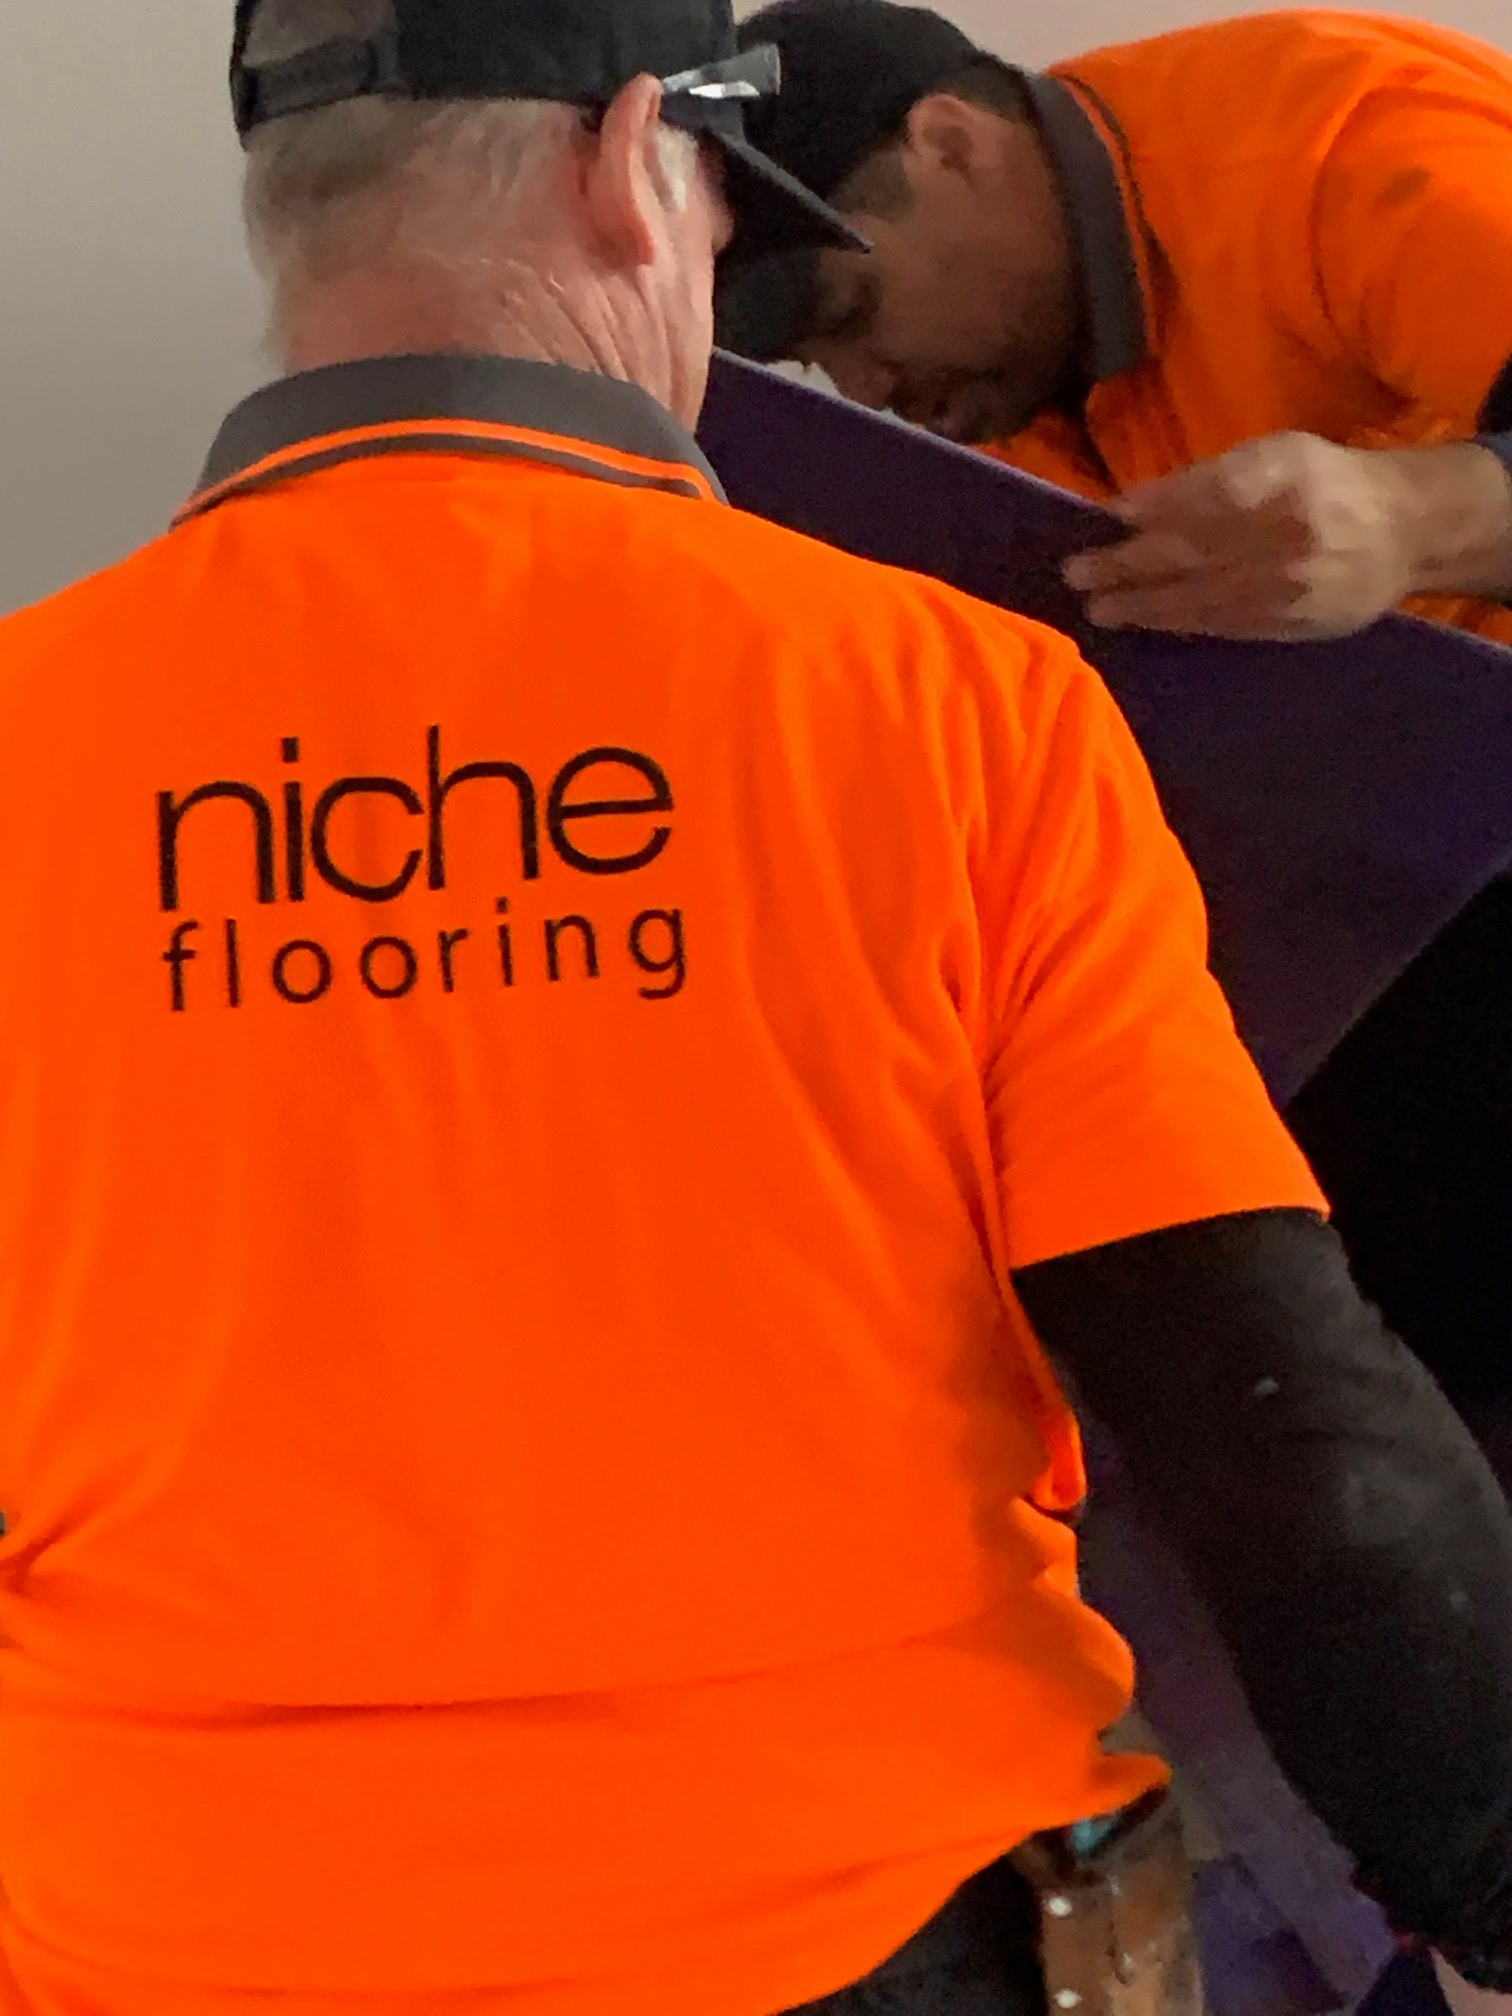 NZ Hockey Flooring